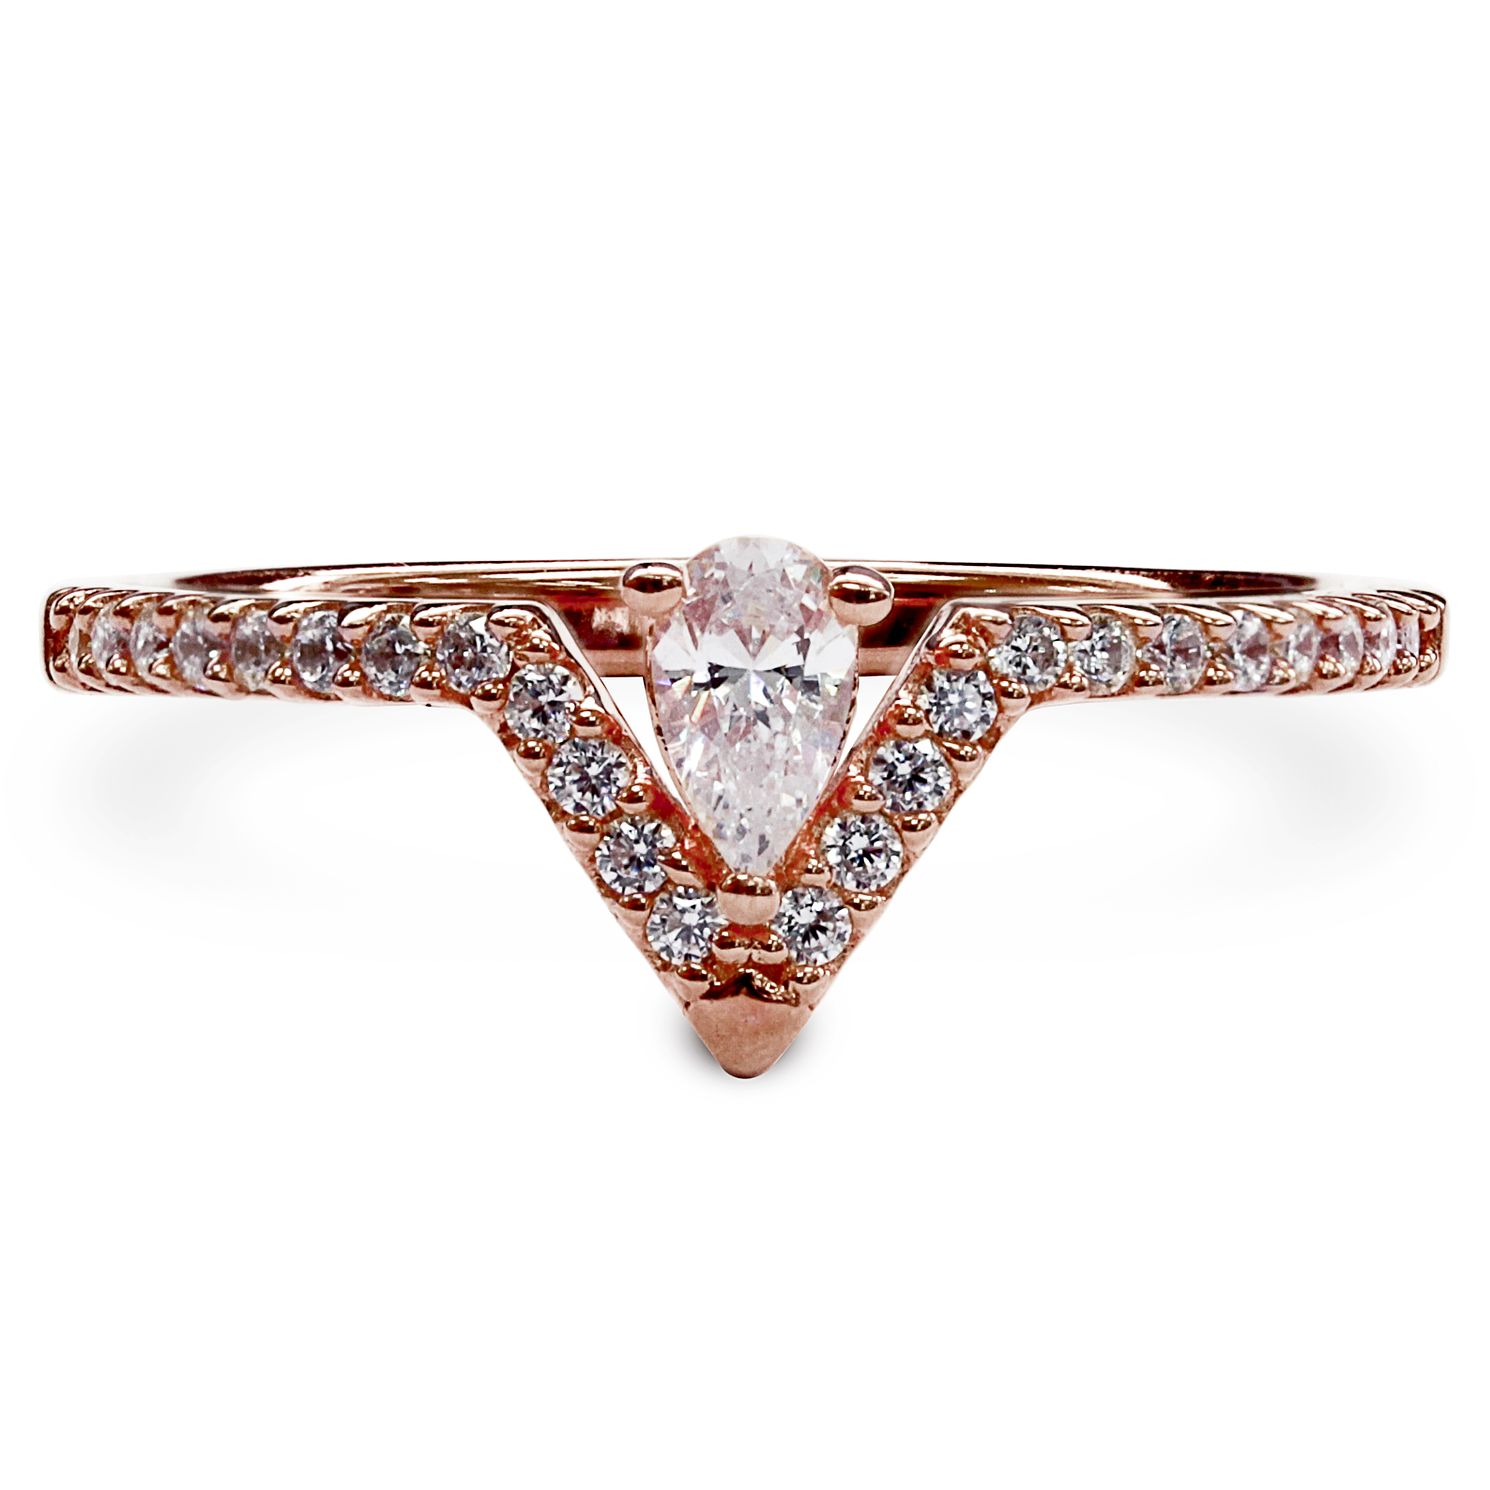 CARAT* LONDON Victoria Rose Gold Plated Ring Size L - Product number 6957803